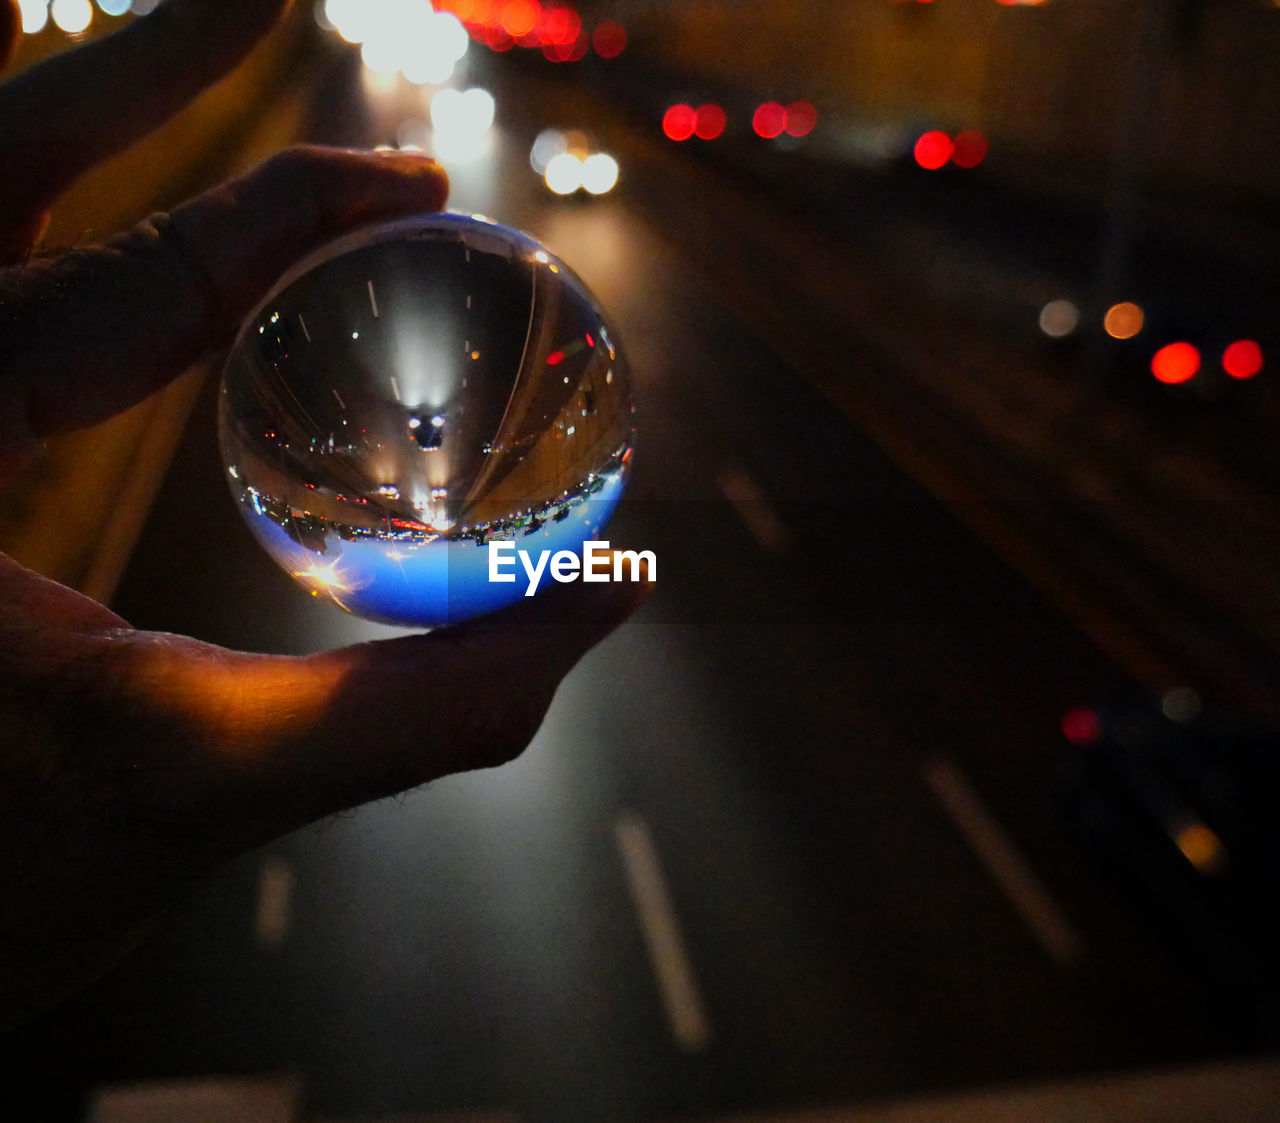 Cropped hand holding crystal ball against road at night